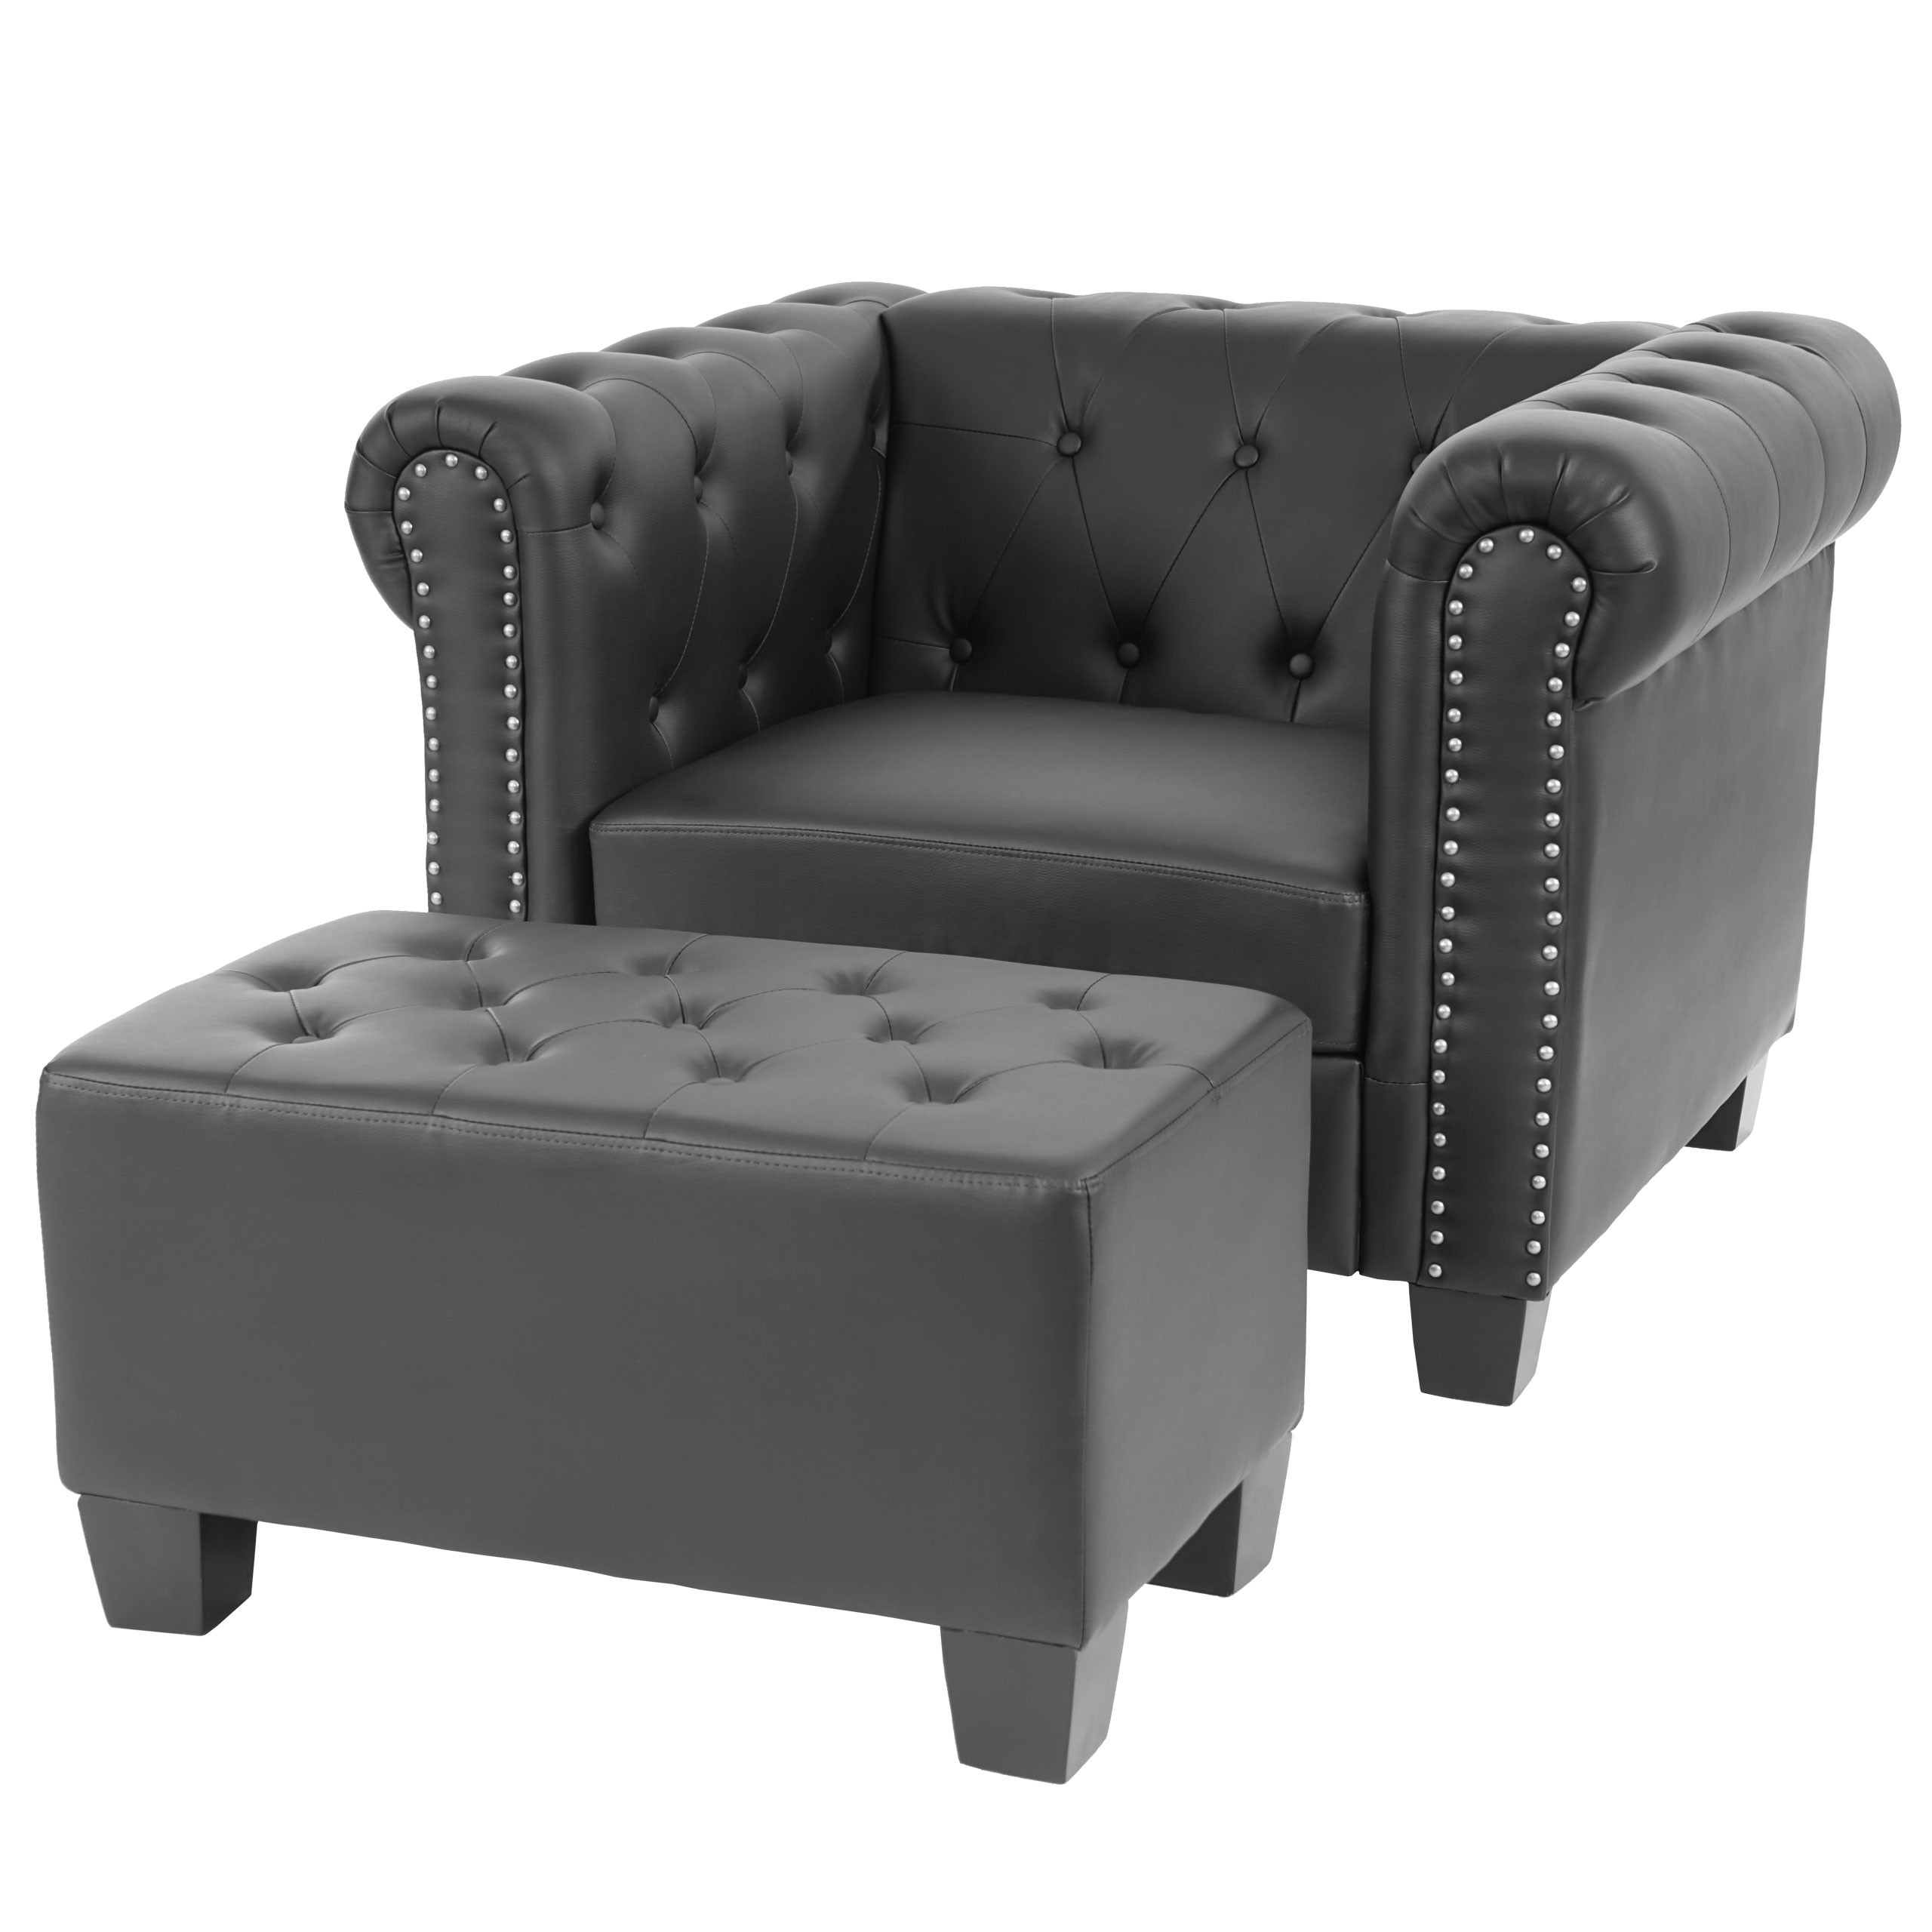 luxus sessel loungesessel relaxsessel chesterfield kunstleder eckige f e schwarz mit ottomane. Black Bedroom Furniture Sets. Home Design Ideas